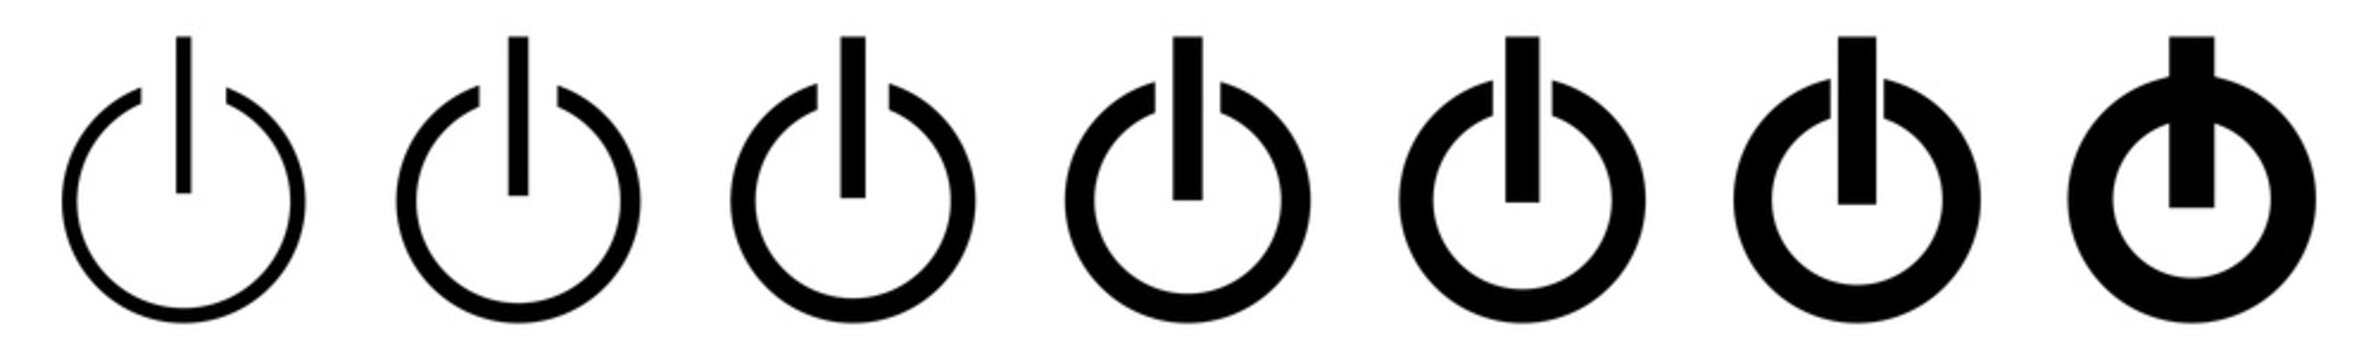 Power Button Icon Black Line | On Off Buttons Illustration | Start Symbol | Shutdown Logo | Logout Sign | Isolated | Variations